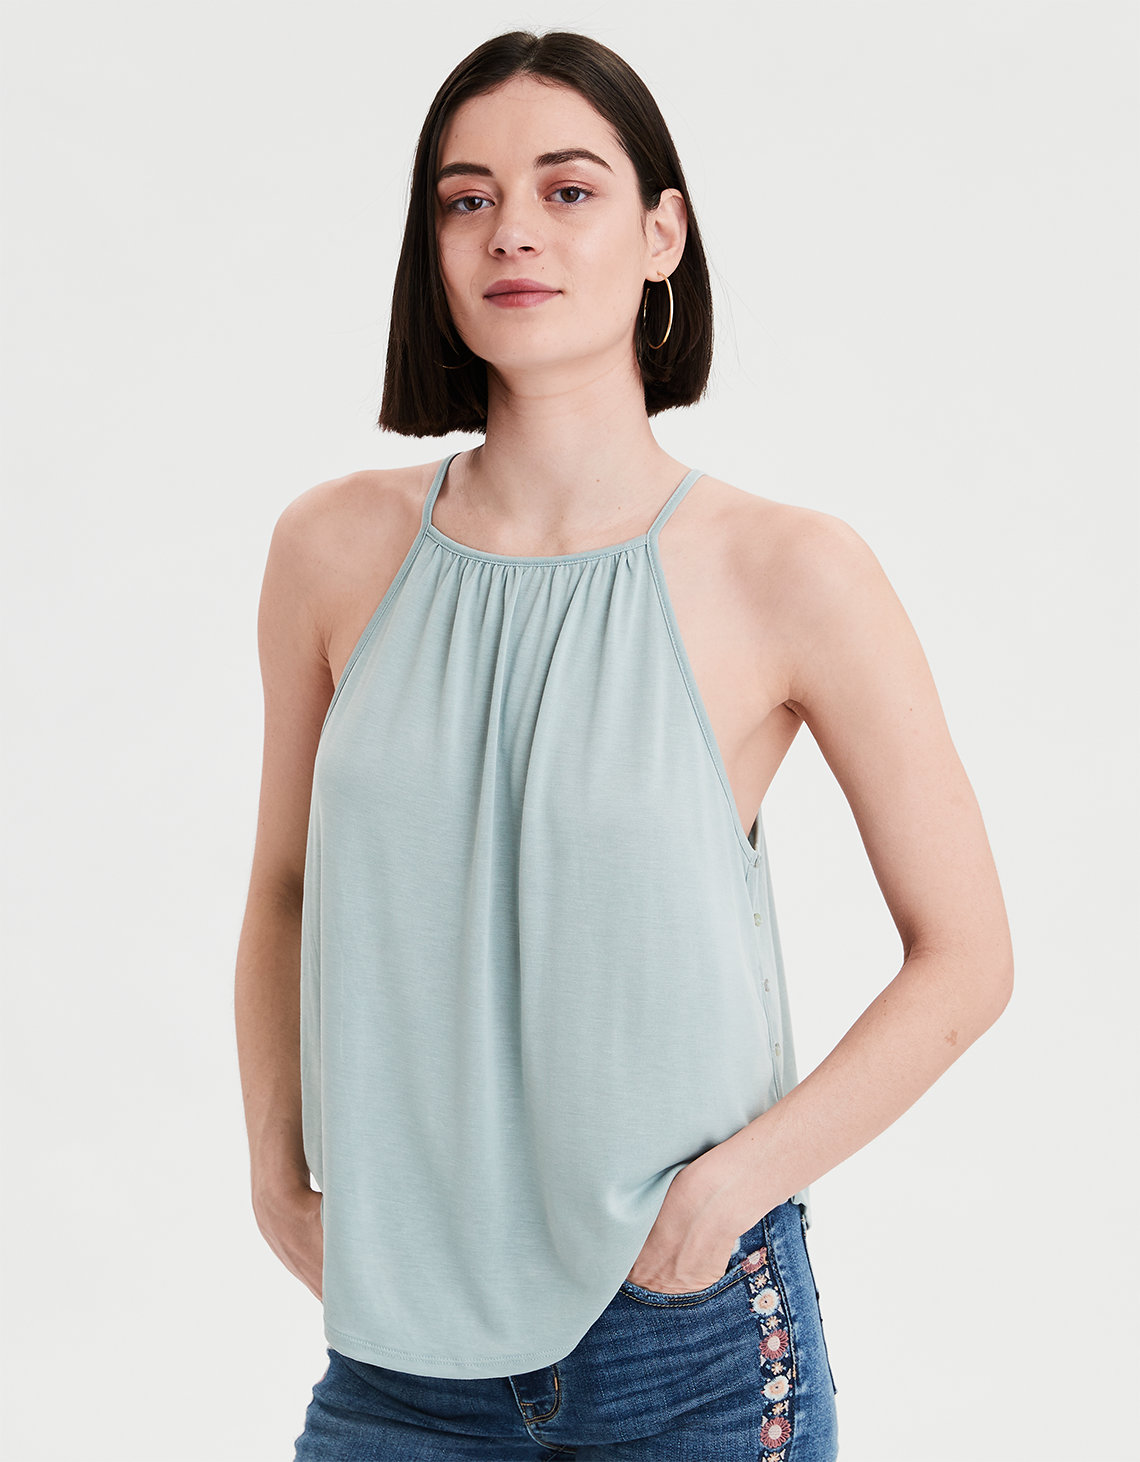 d0dfbd042e422 AE Soft   Sexy Swing Tank Top. Placeholder image. Product Image